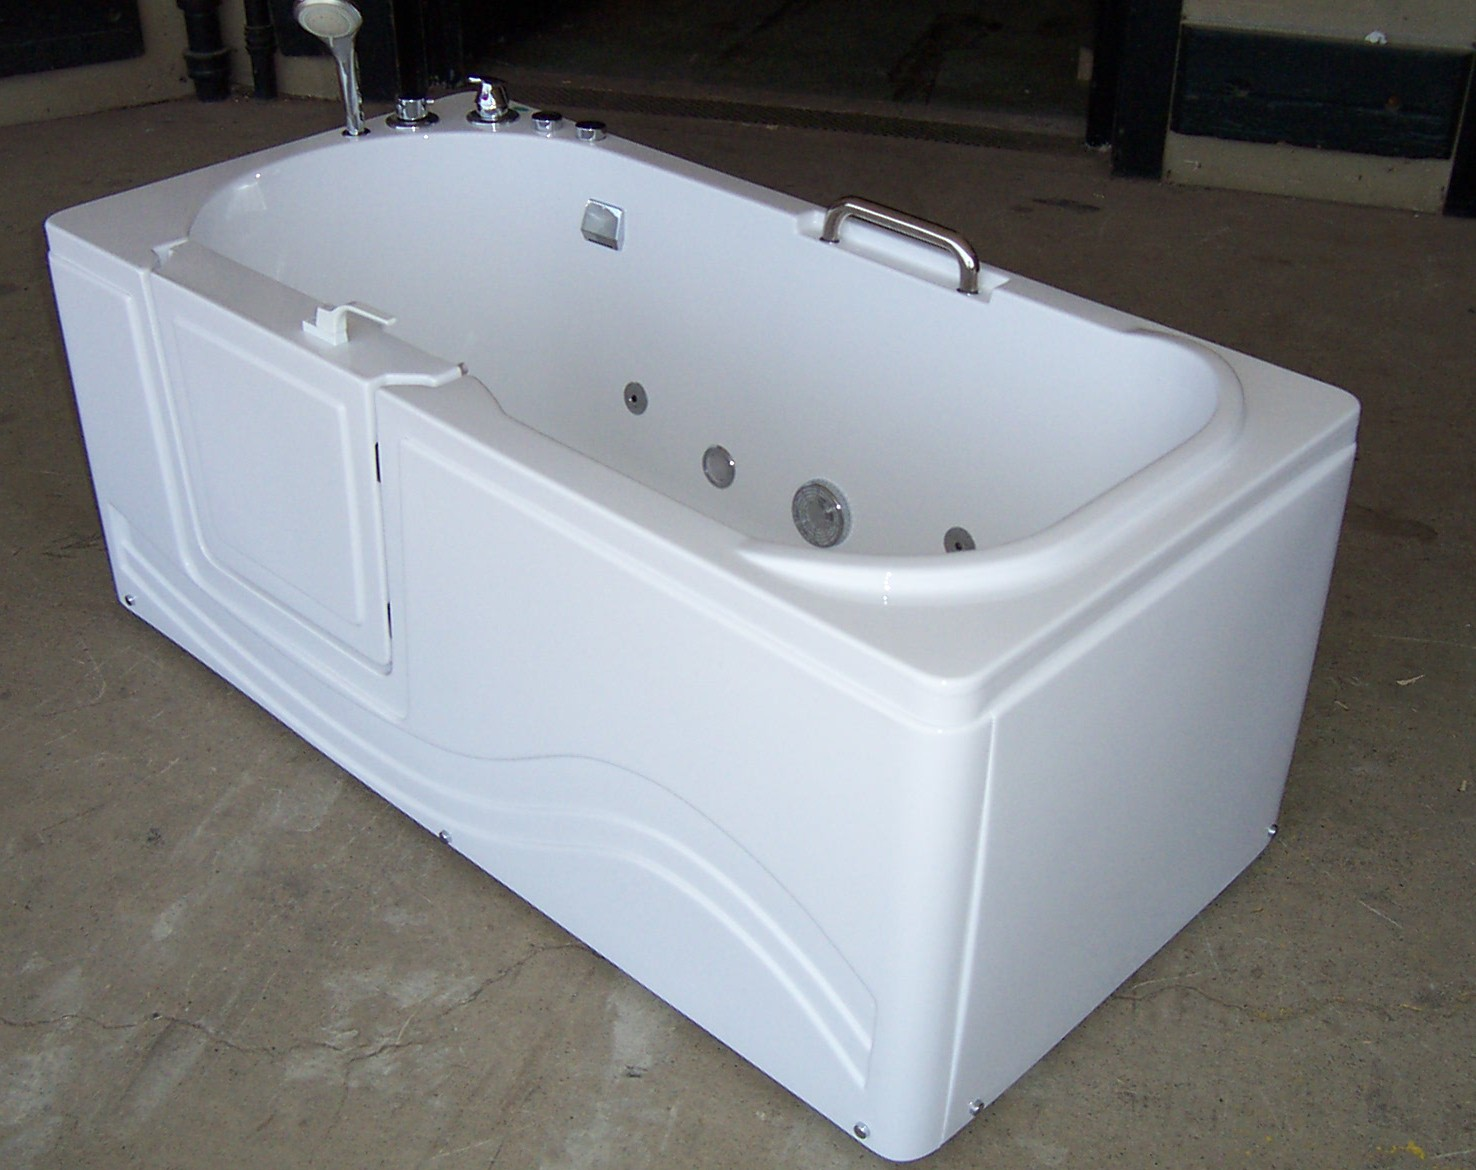 Luxury Spas And Whirlpool Bathtubs OW 9WO4 Walk In Tub